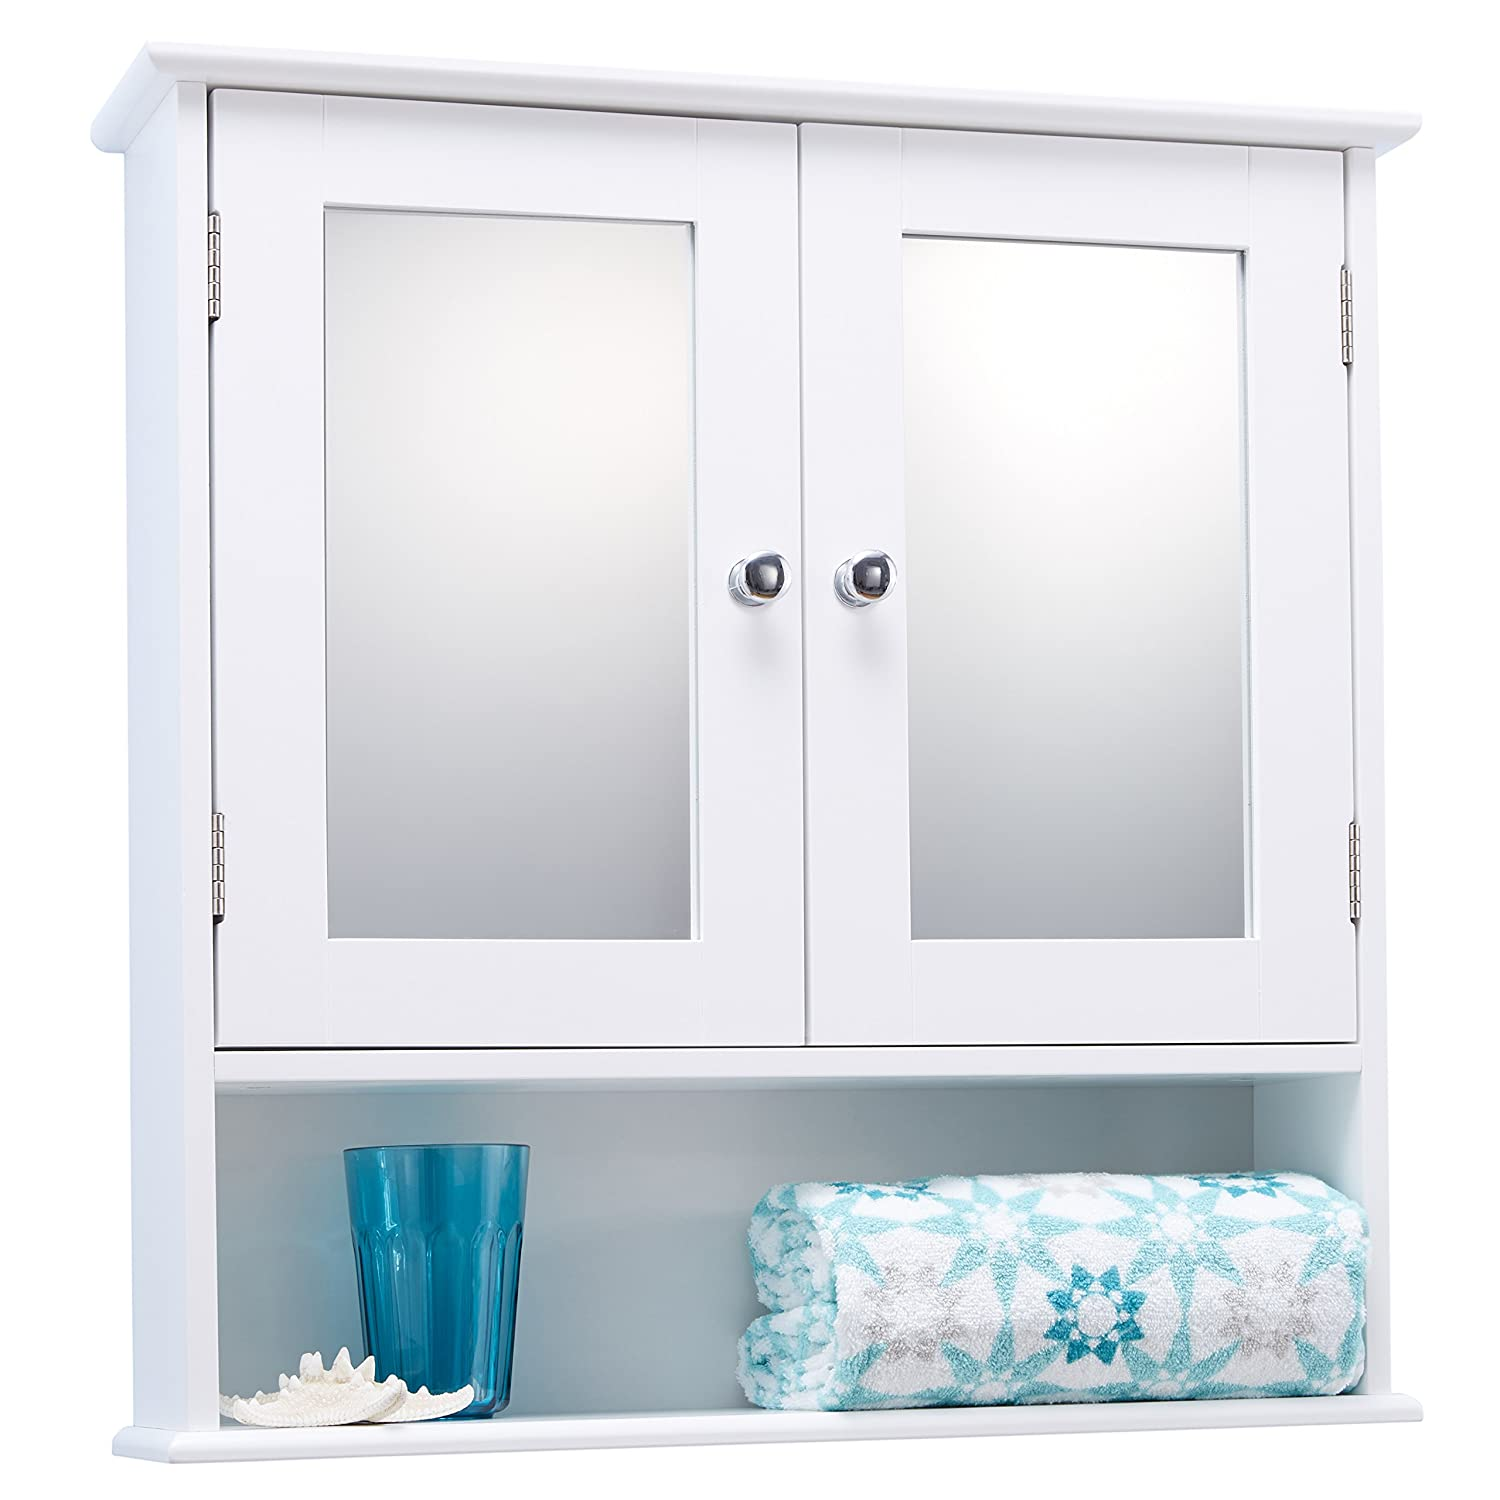 Double Door White Bathroom Mirror Cabinet Mirrored